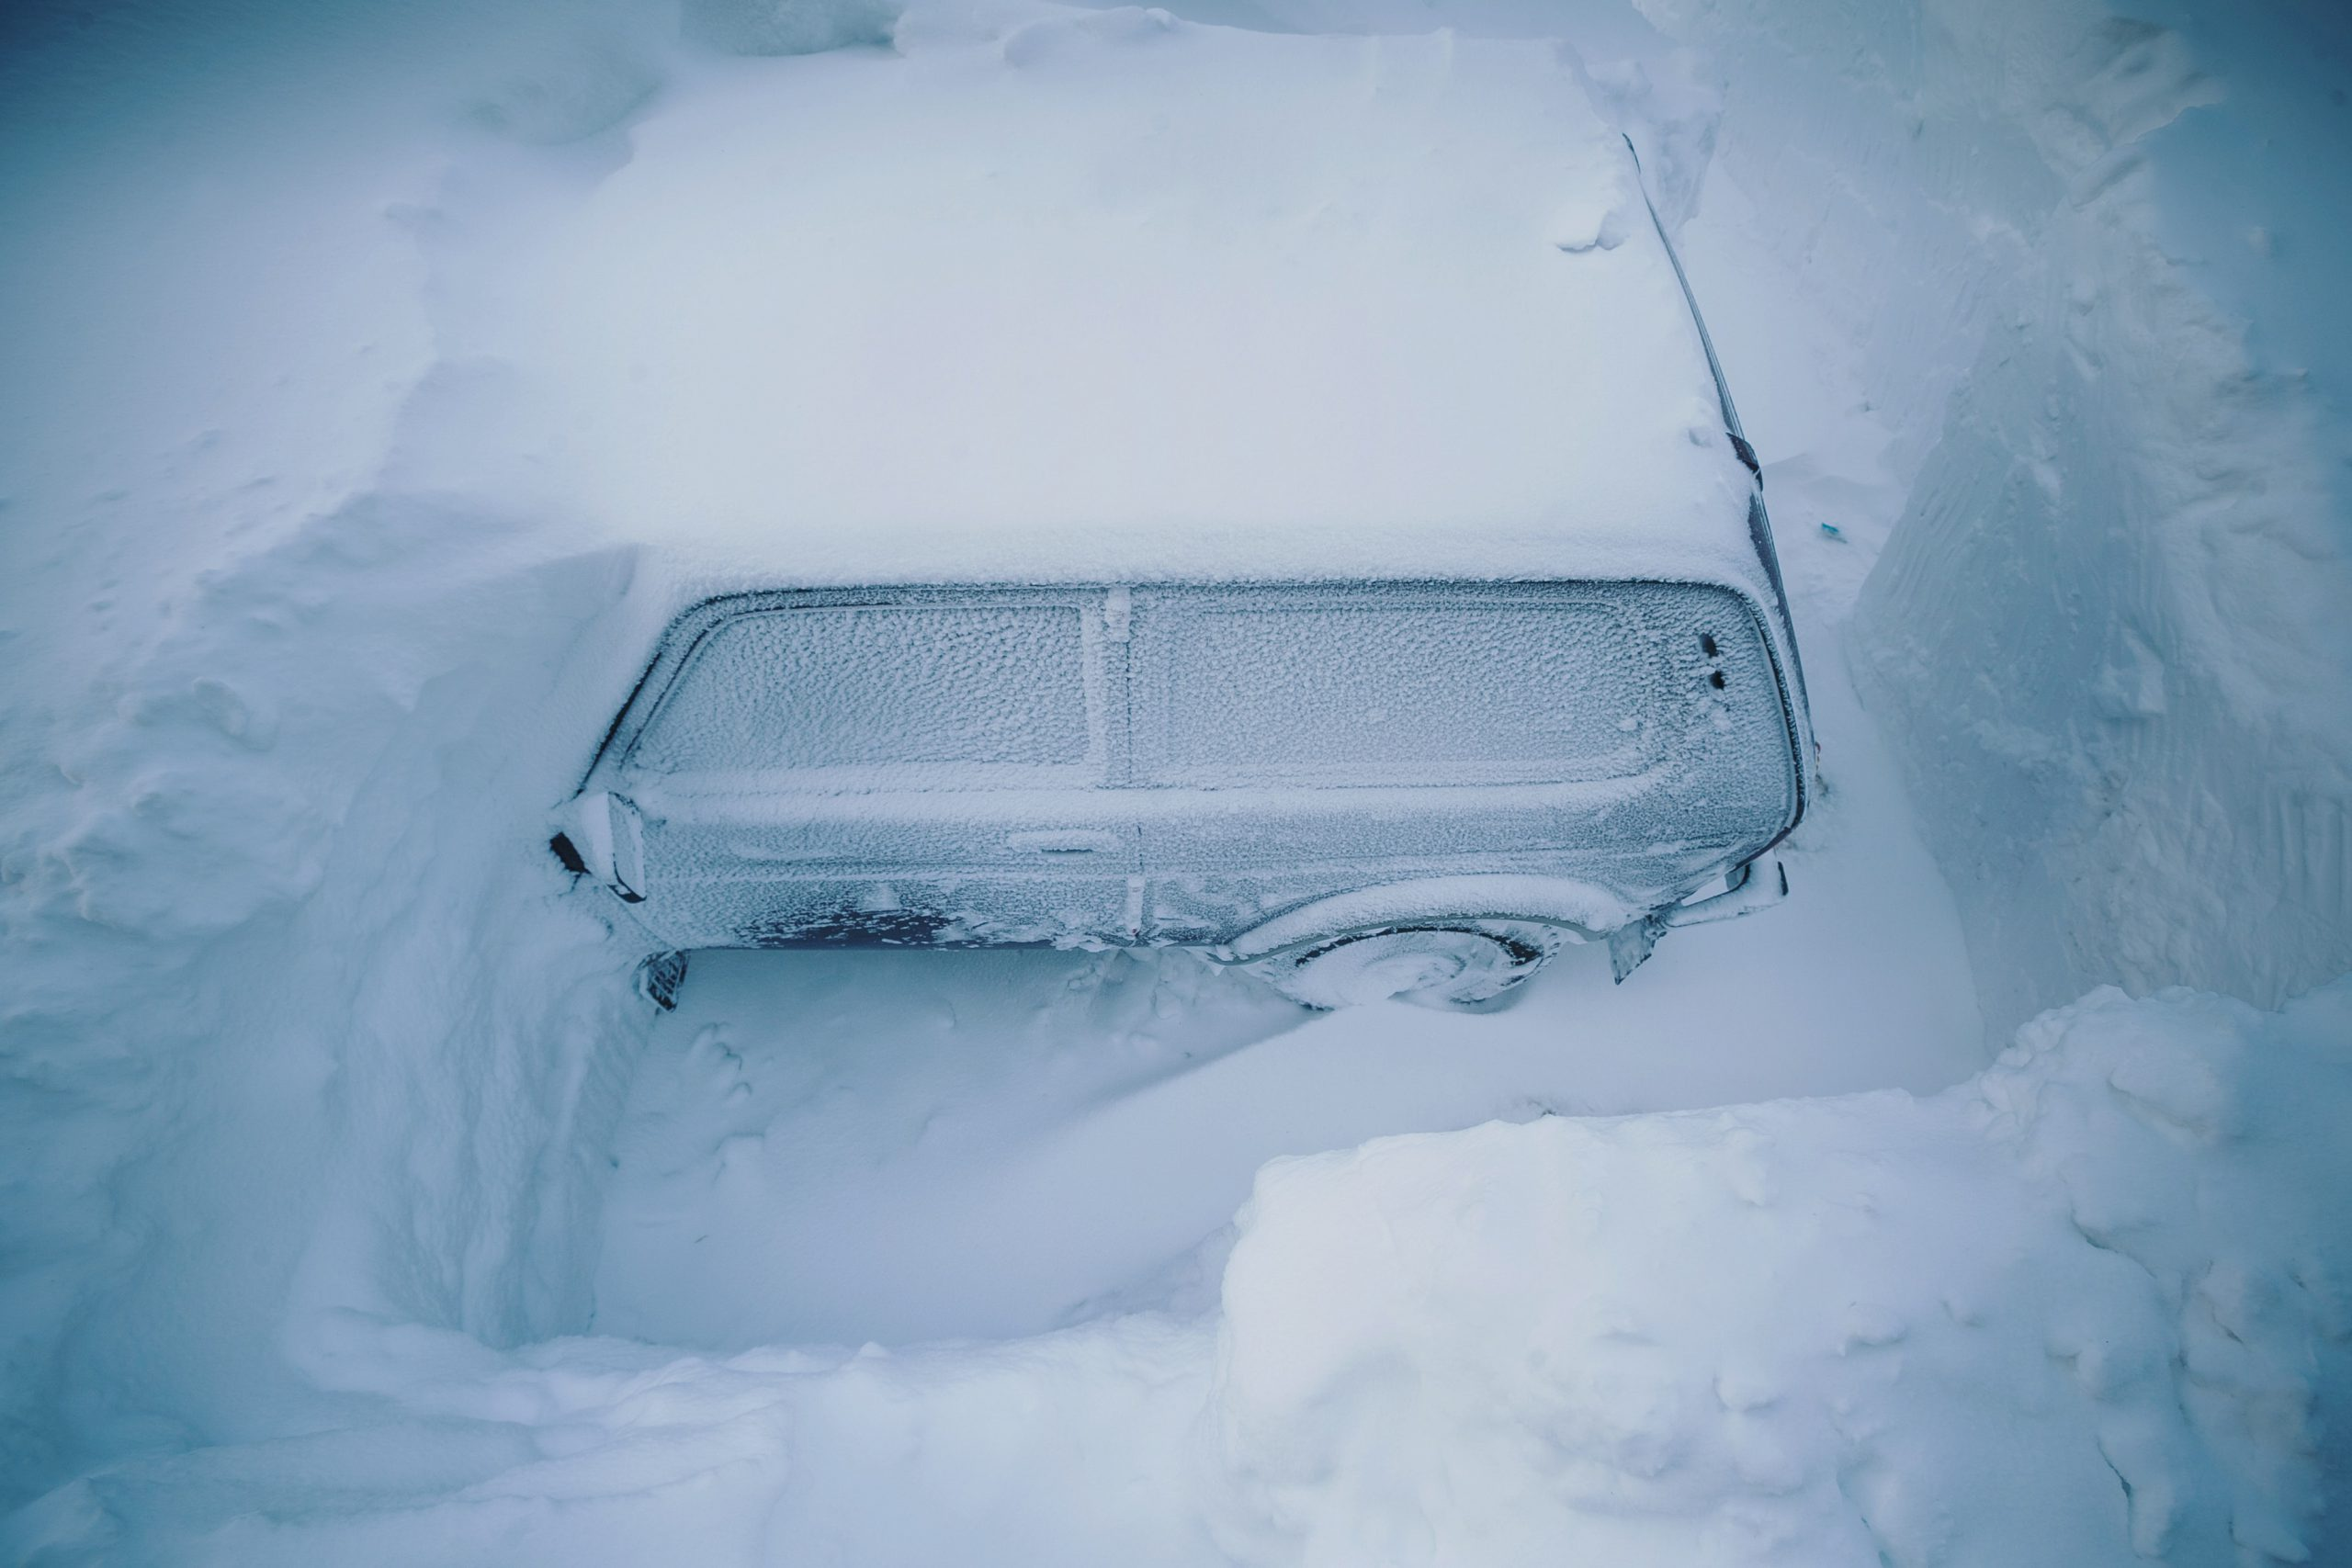 Vehicle covered in snow